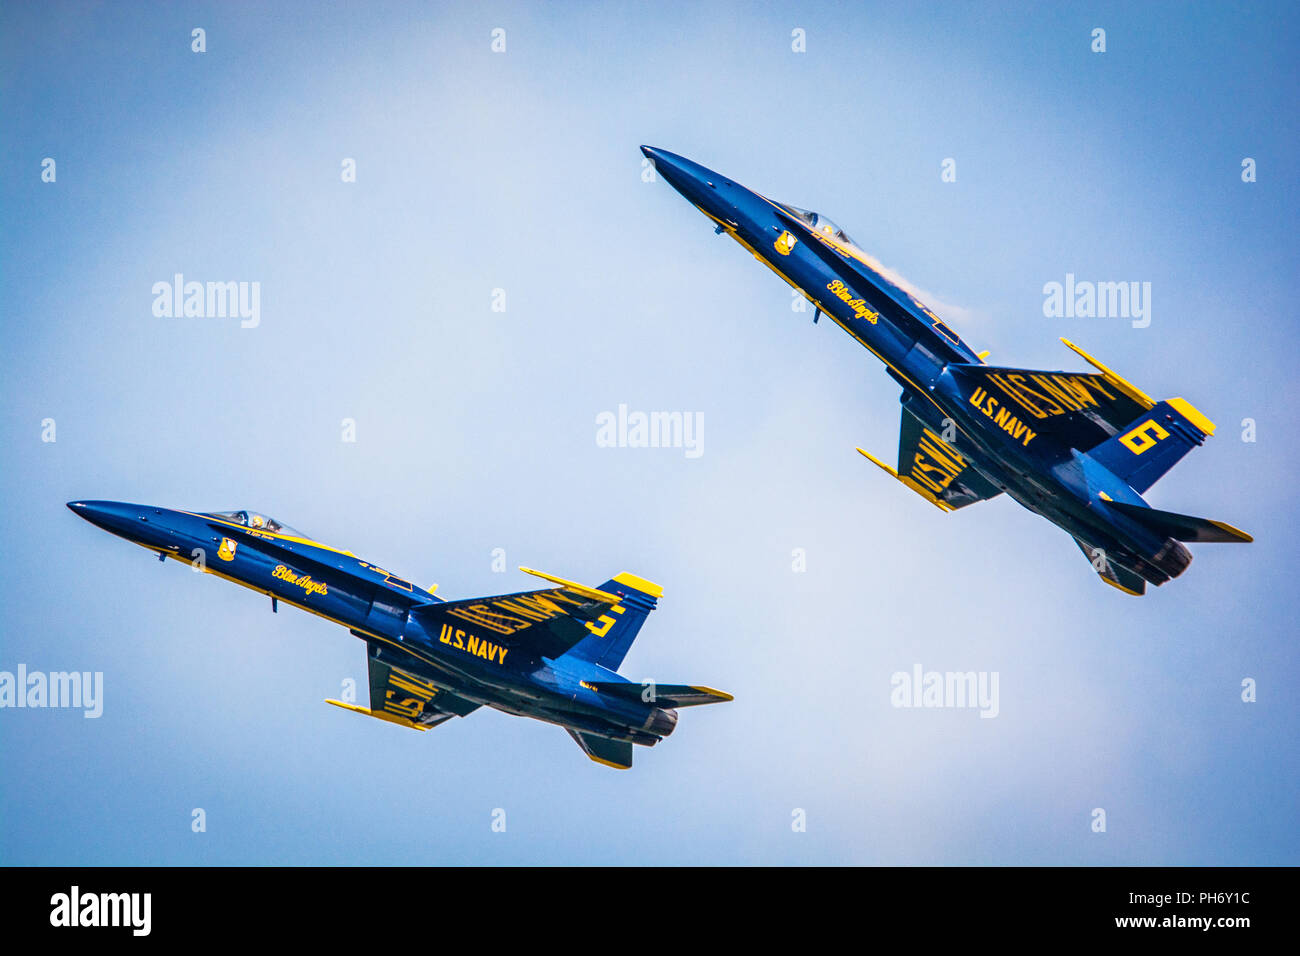 A formation of U.S. Navy F-18 Hornets, assigned to the Navy Flight Demonstration Squadron, the Blue Angels, fly over a C-130 Hercules aircraft during the Sound of Speed Air Show and Open House at Rosecrans Air National Guard Base, St. Joseph, August 24, 2018. The air show was hosted by the 139th Airlift Wing, Missouri Air National Guard and city of St. Joseph to thank the community for their support. The air show committee estimated around 70,000 people attended the weekend performances. The Blue Angels strive to showcase the pride and professionalism of the United States Navy and Marine Corps - Stock Image